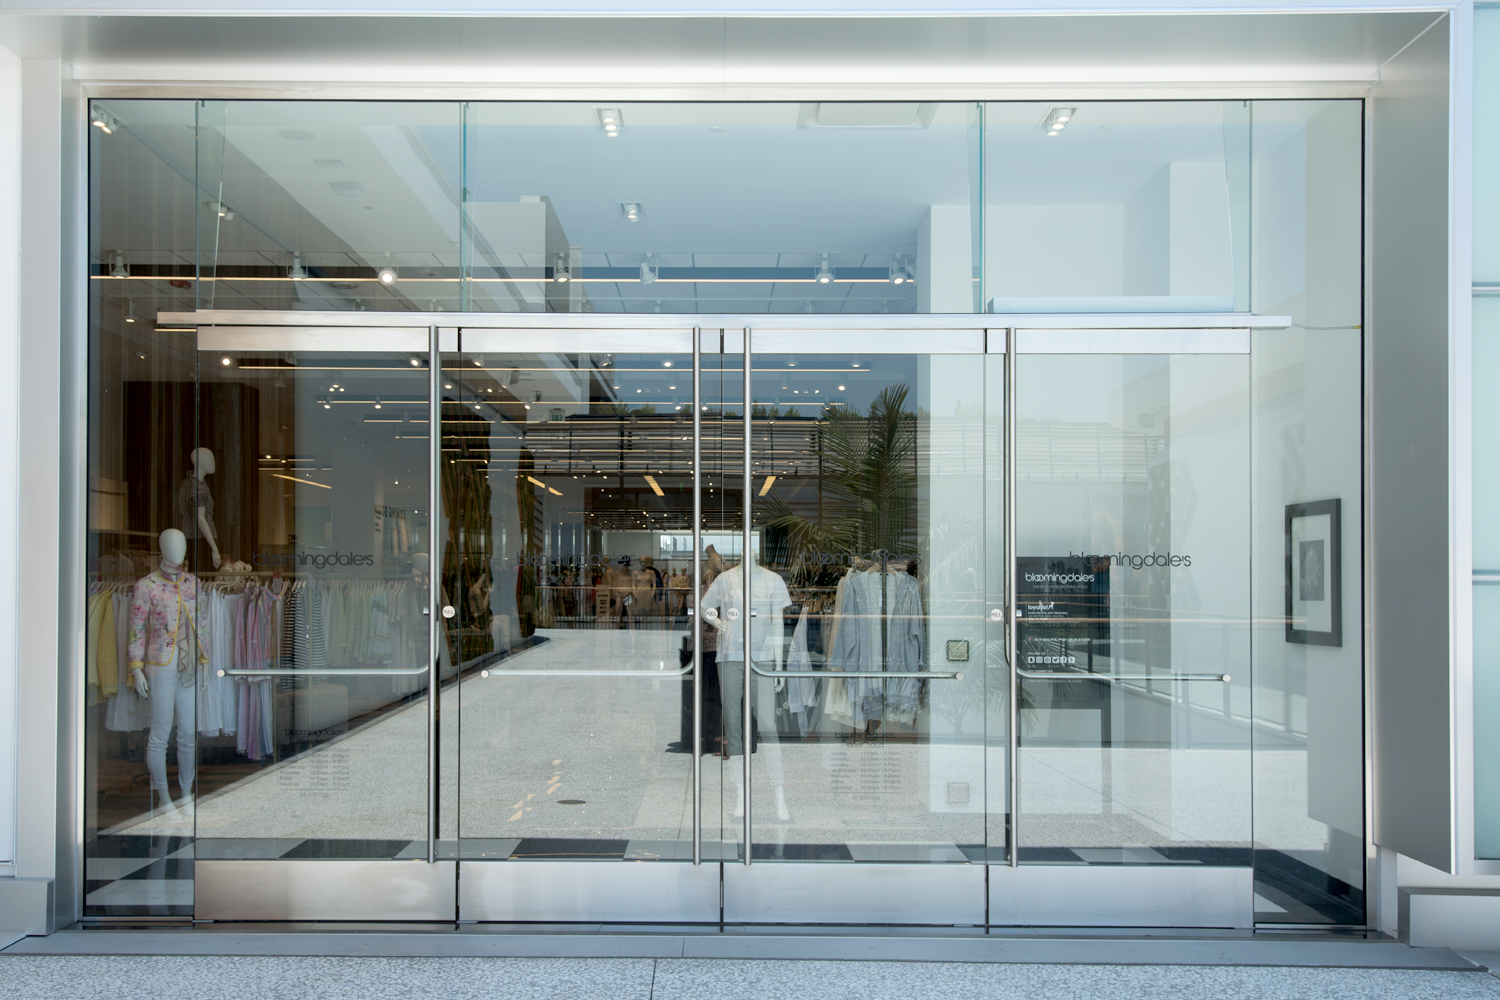 Specifying all glass entrance systems archpaper specifying all glass entrance systems courtesy cr laurence planetlyrics Choice Image